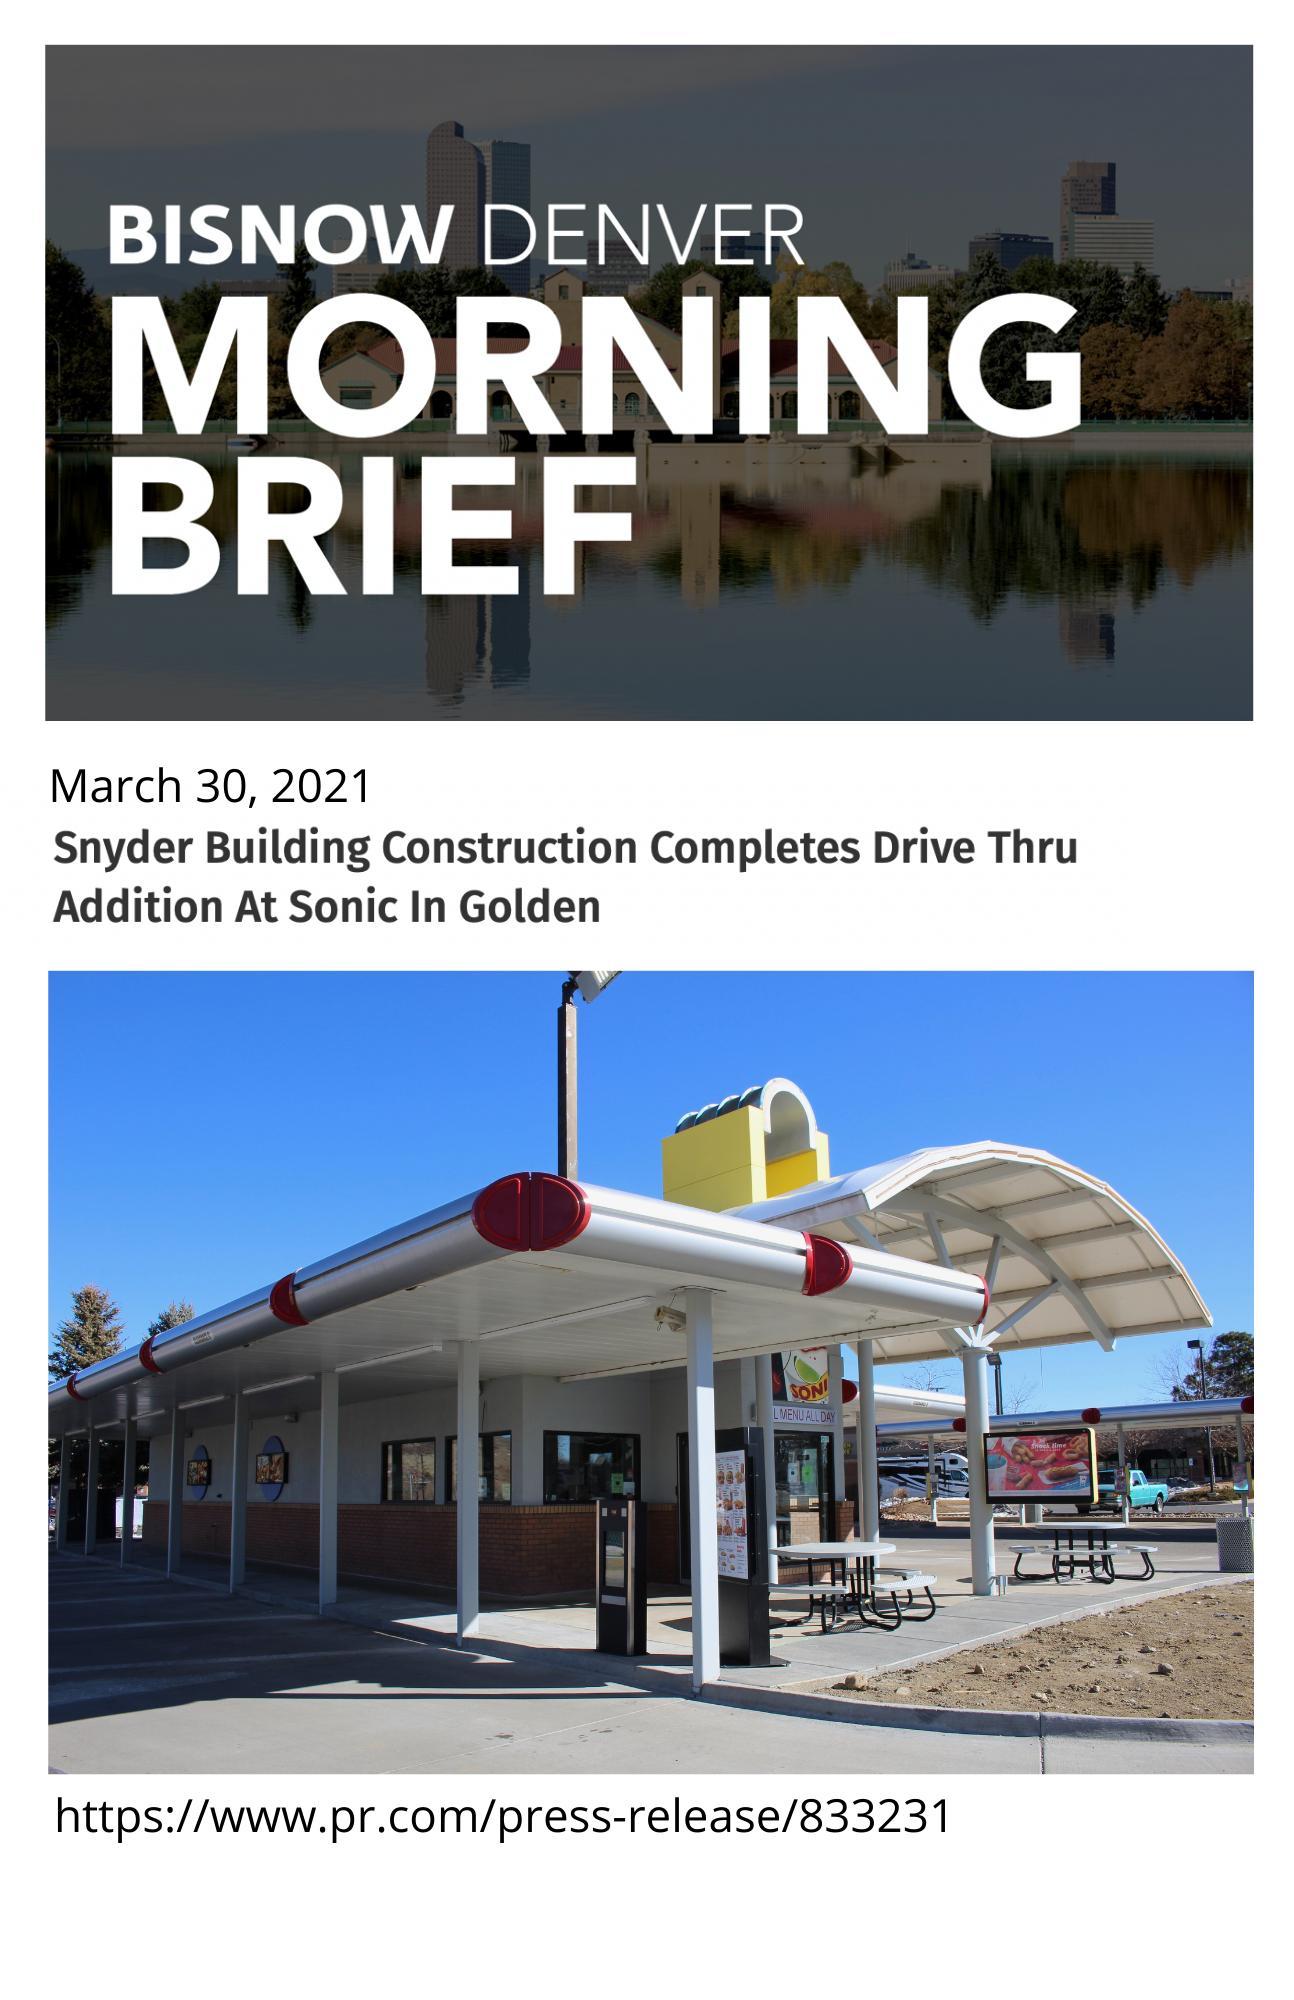 Snyder Building Construction Completes Sonic Drive Thru Addition